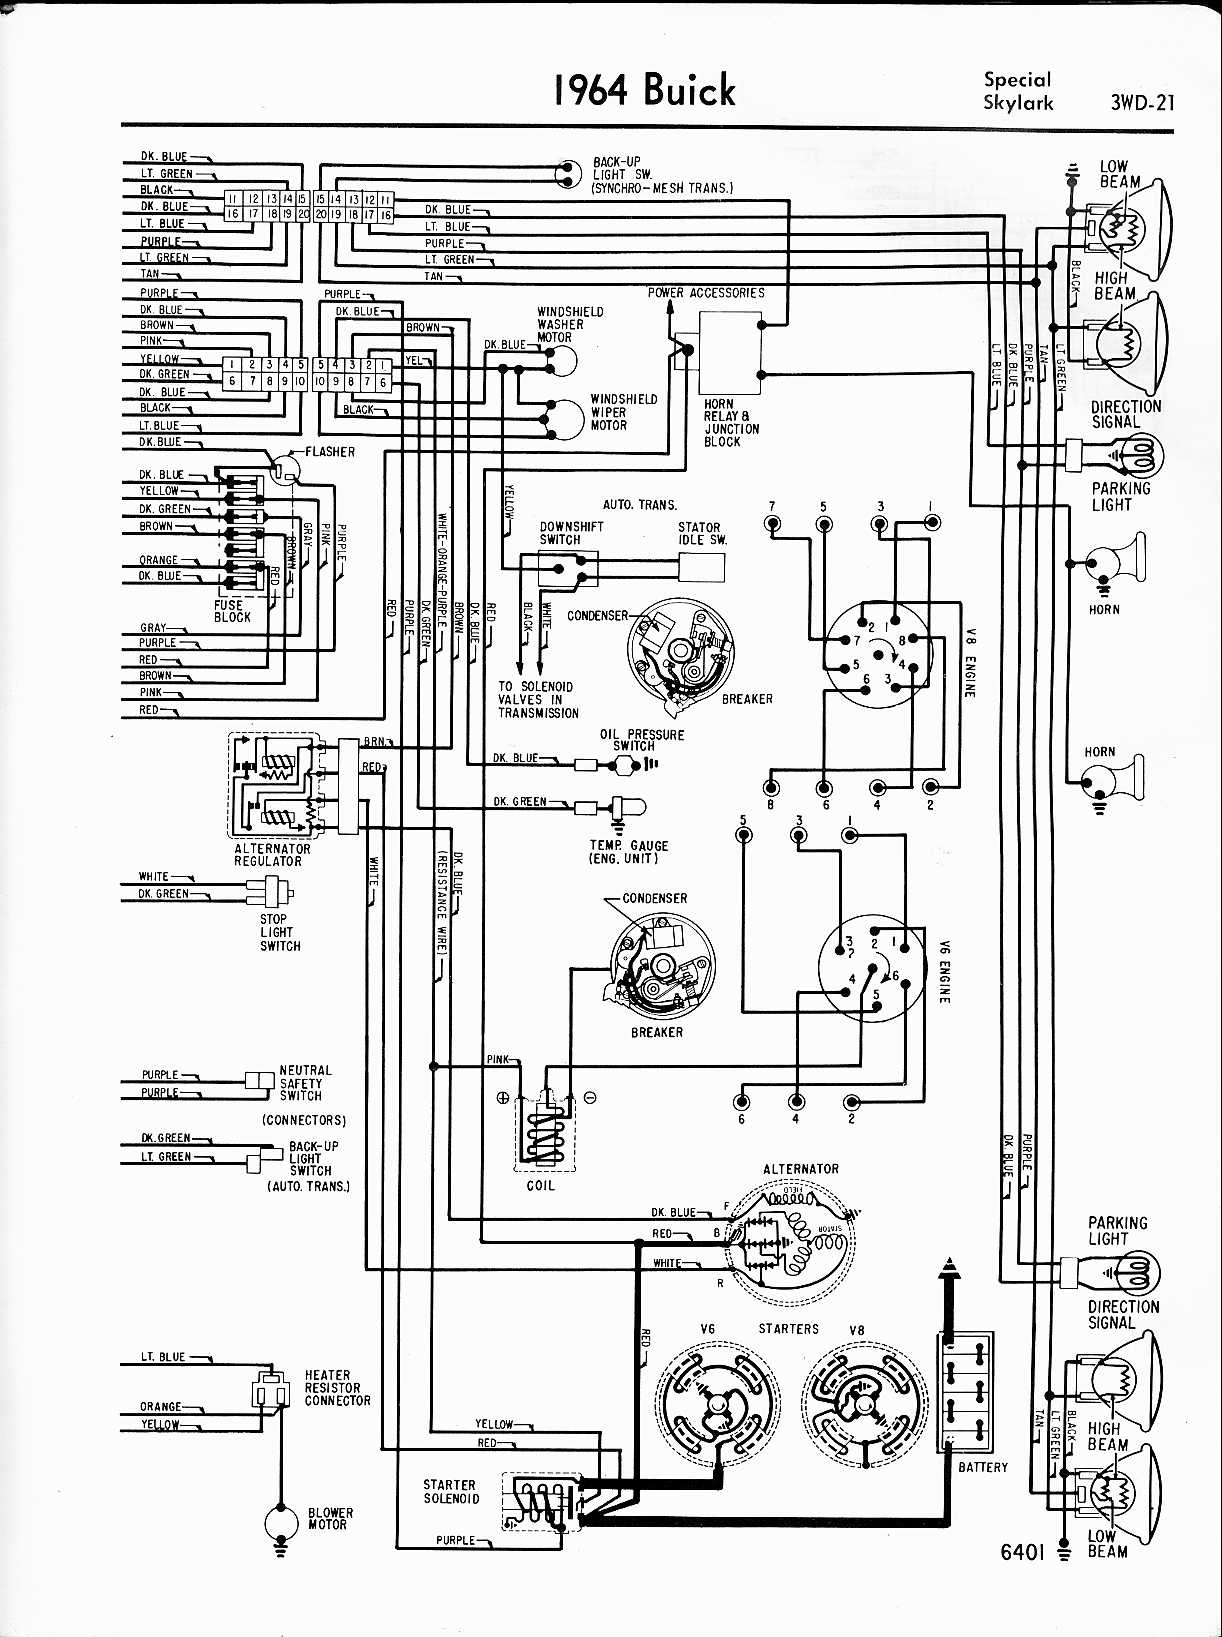 1967 Buick Riviera Fuse Box Starting Know About Wiring Diagram For 1976 Chevy Monza Fuel Pump 1966 Simple Rh David Huggett Co Uk Skylark